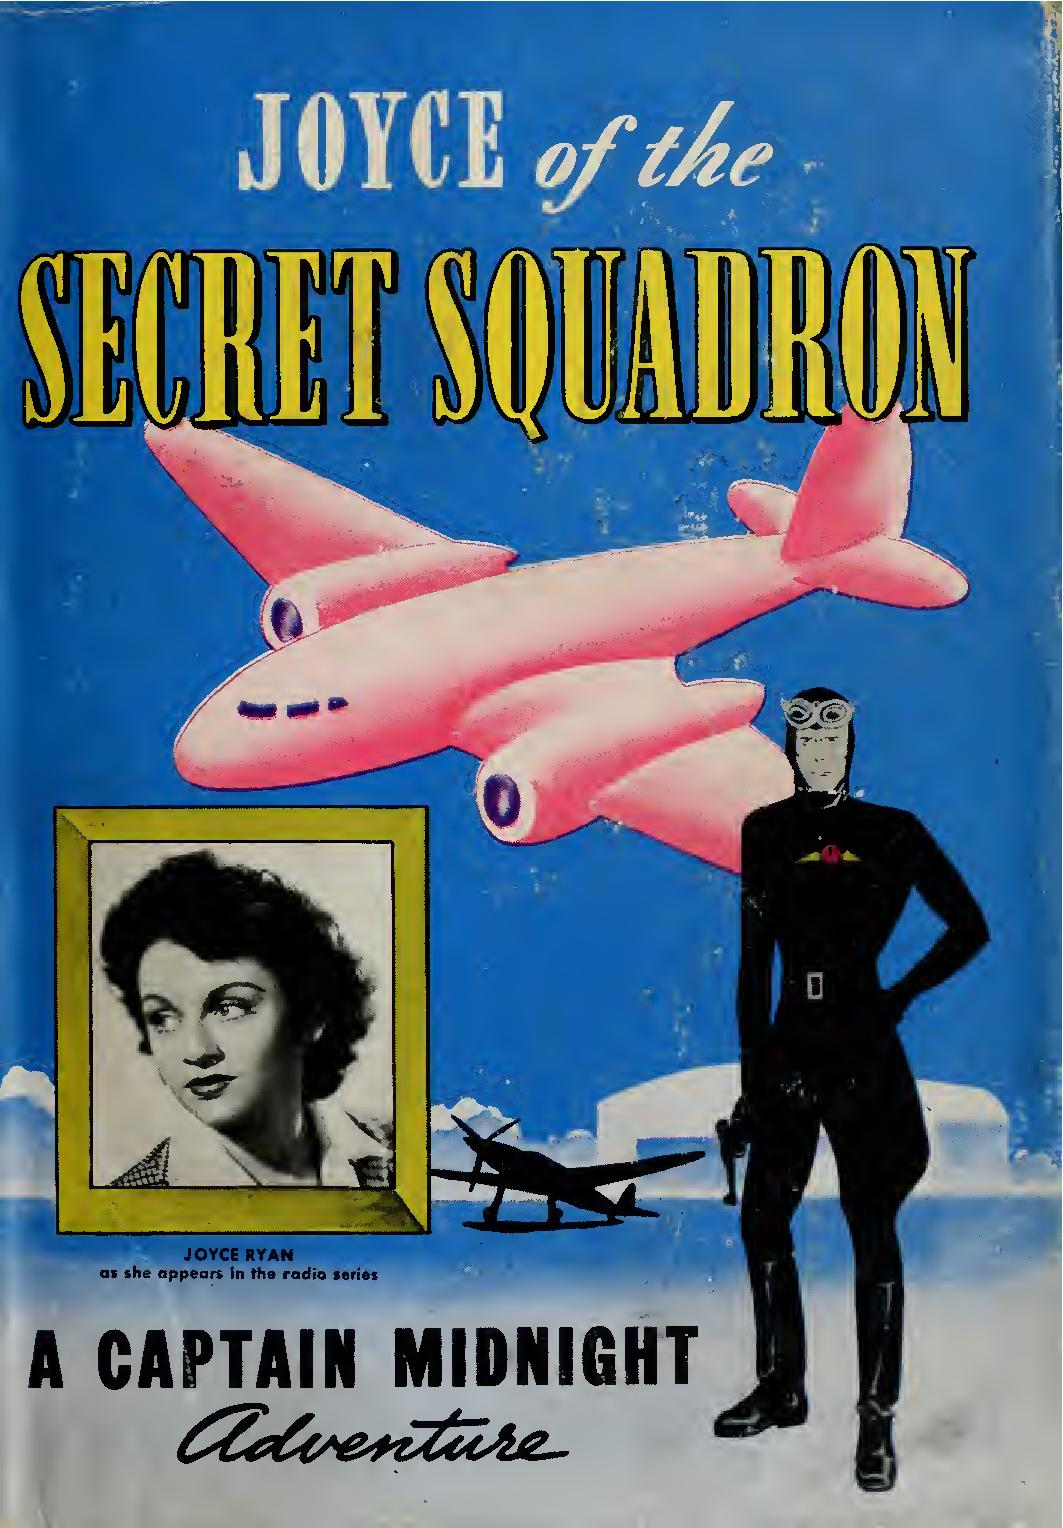 Comic Book Cover For Joyce of the Secret Squadron - A Captain Midnight Adventure